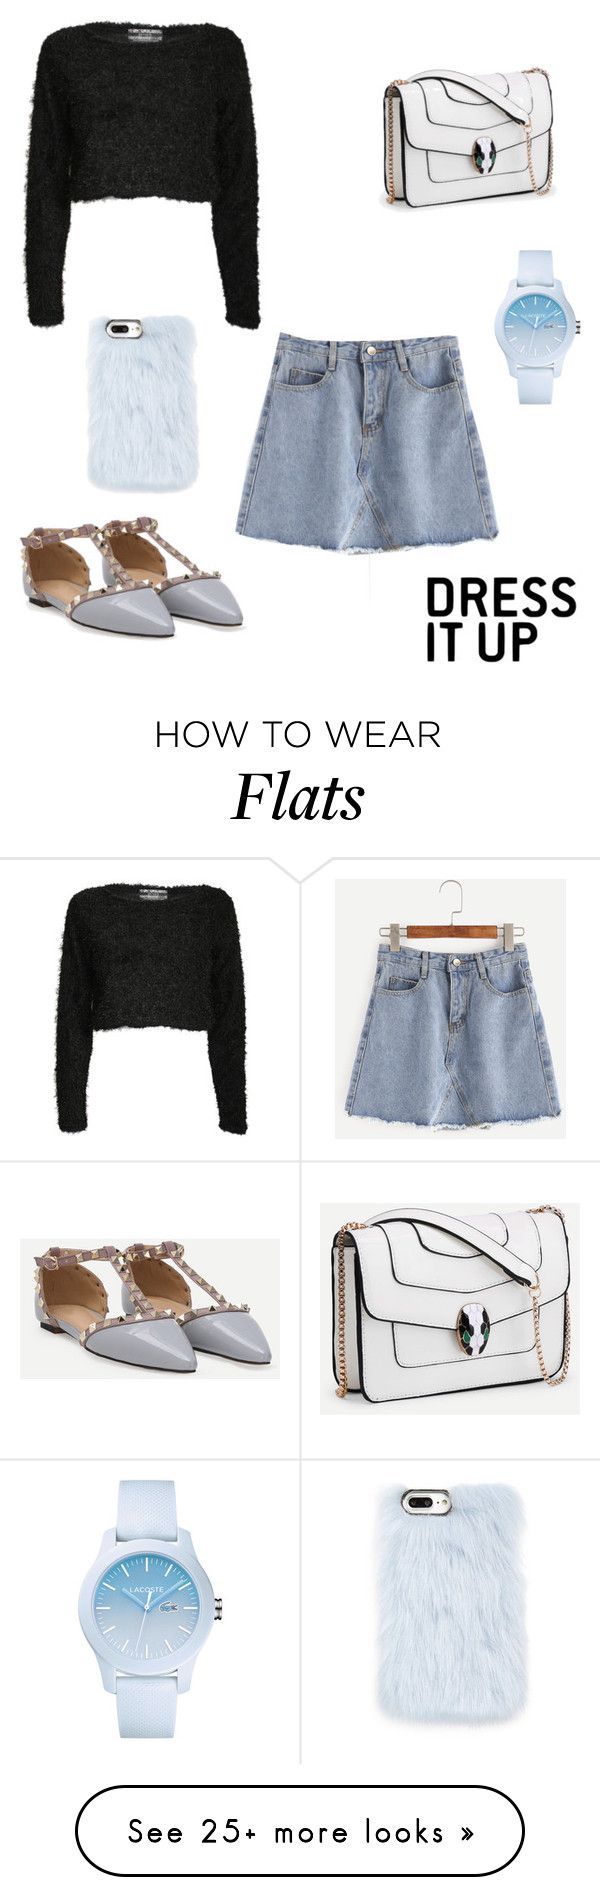 """""""dress it up"""" by tguedes on Polyvore featuring Pilot, Skinnydip and Lacoste"""